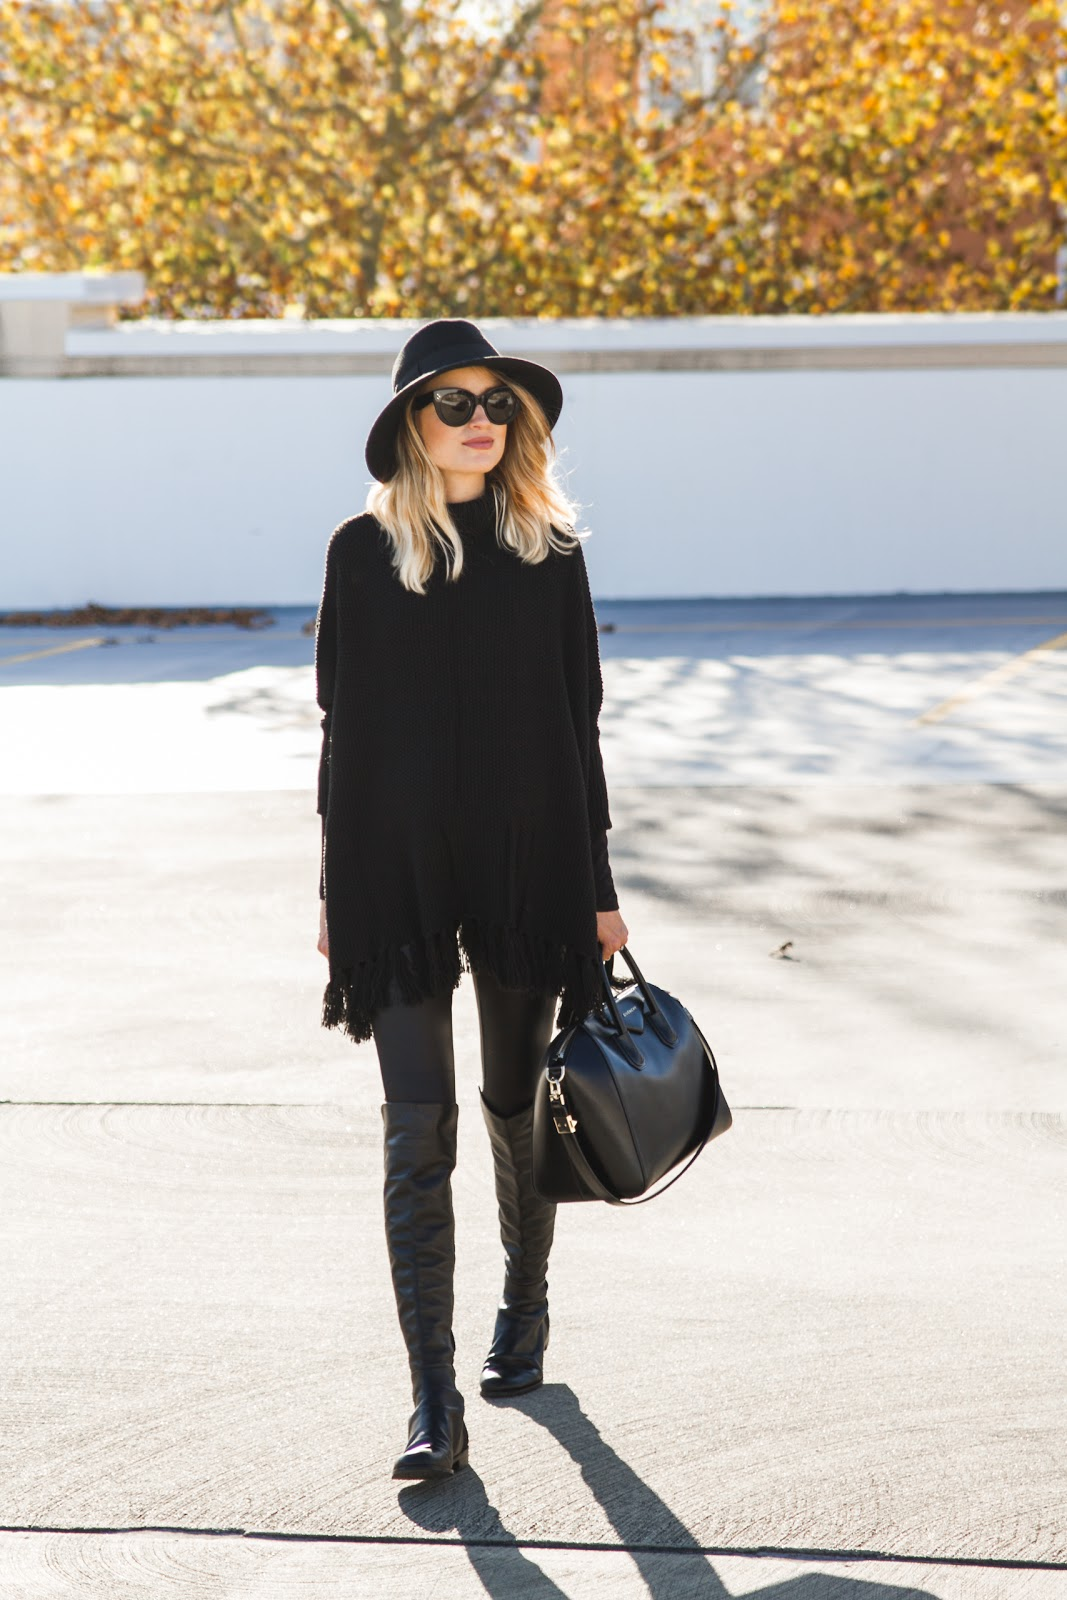 Textured Fringe All-Black Sweater and Leggings and Over-the-knee boots and hat